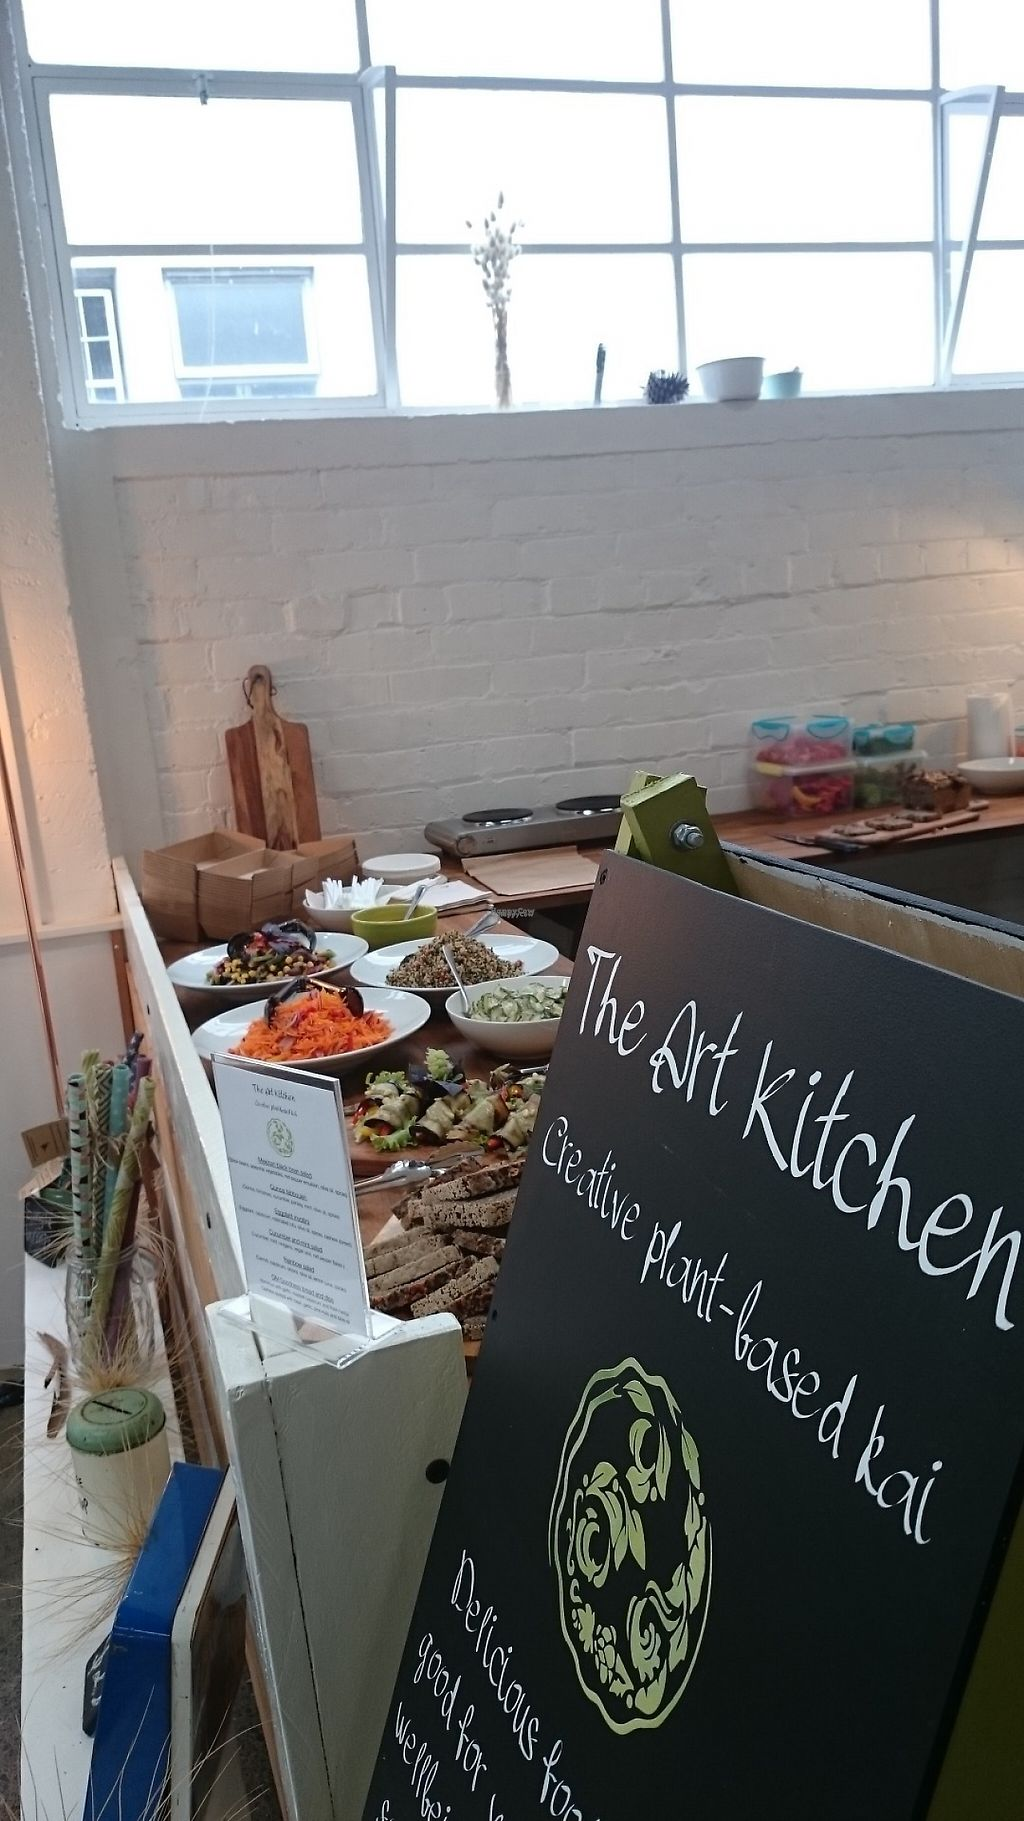 """Photo of The Art Kitchen  by <a href=""""/members/profile/artkitchen"""">artkitchen</a> <br/>The Art Kitchen <br/> March 4, 2017  - <a href='/contact/abuse/image/88076/232670'>Report</a>"""